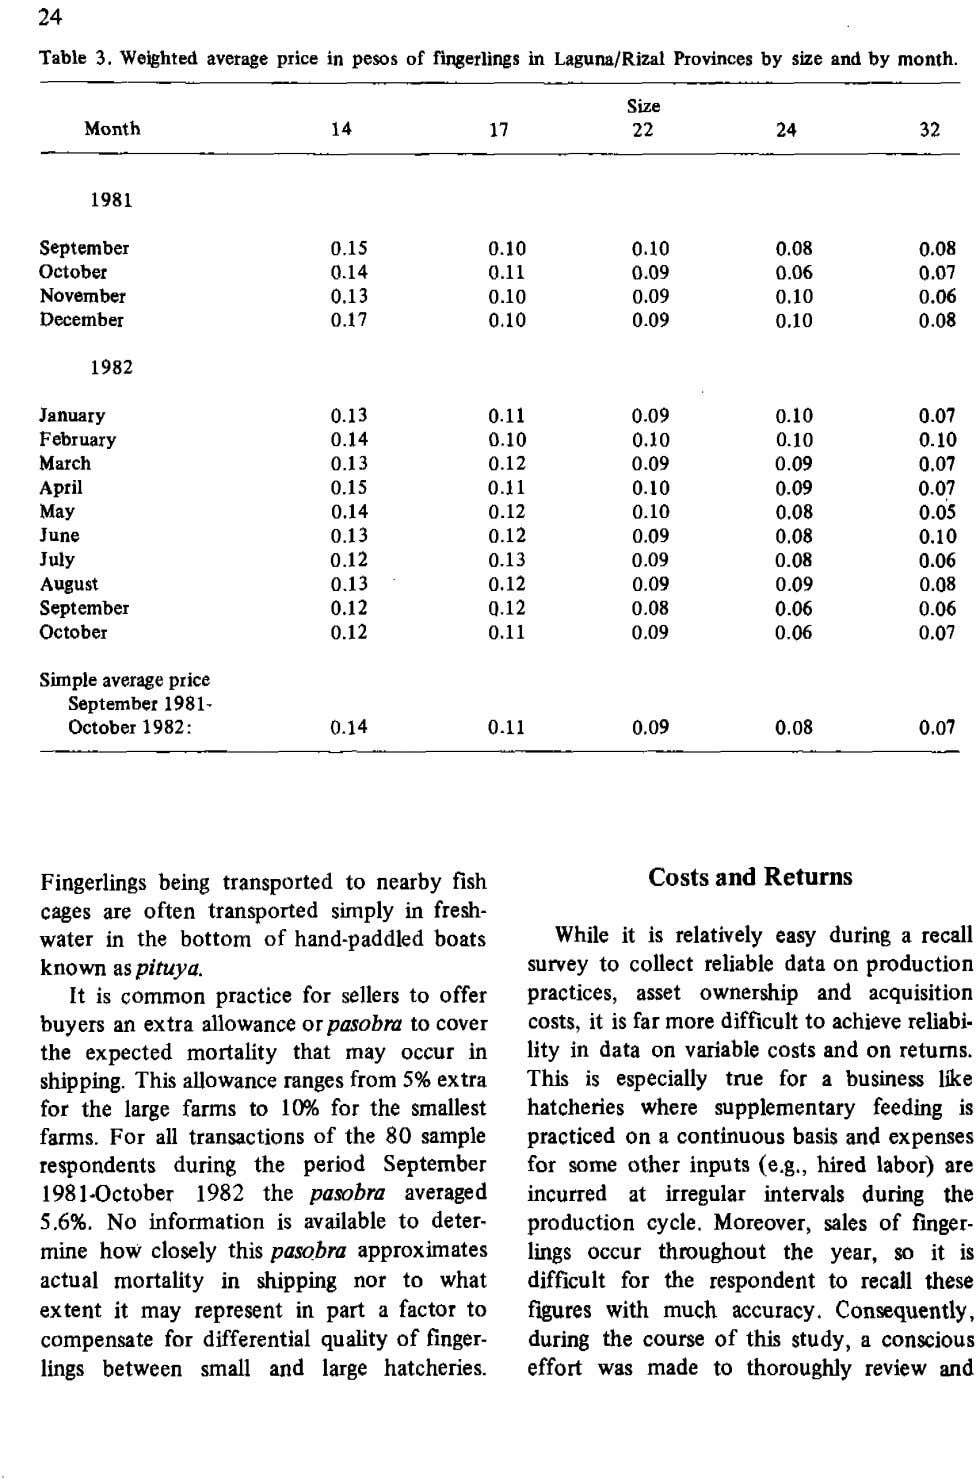 Table 3. Weighted average price in pesos of fingerlings in LagunaIRizal Provinces by size and